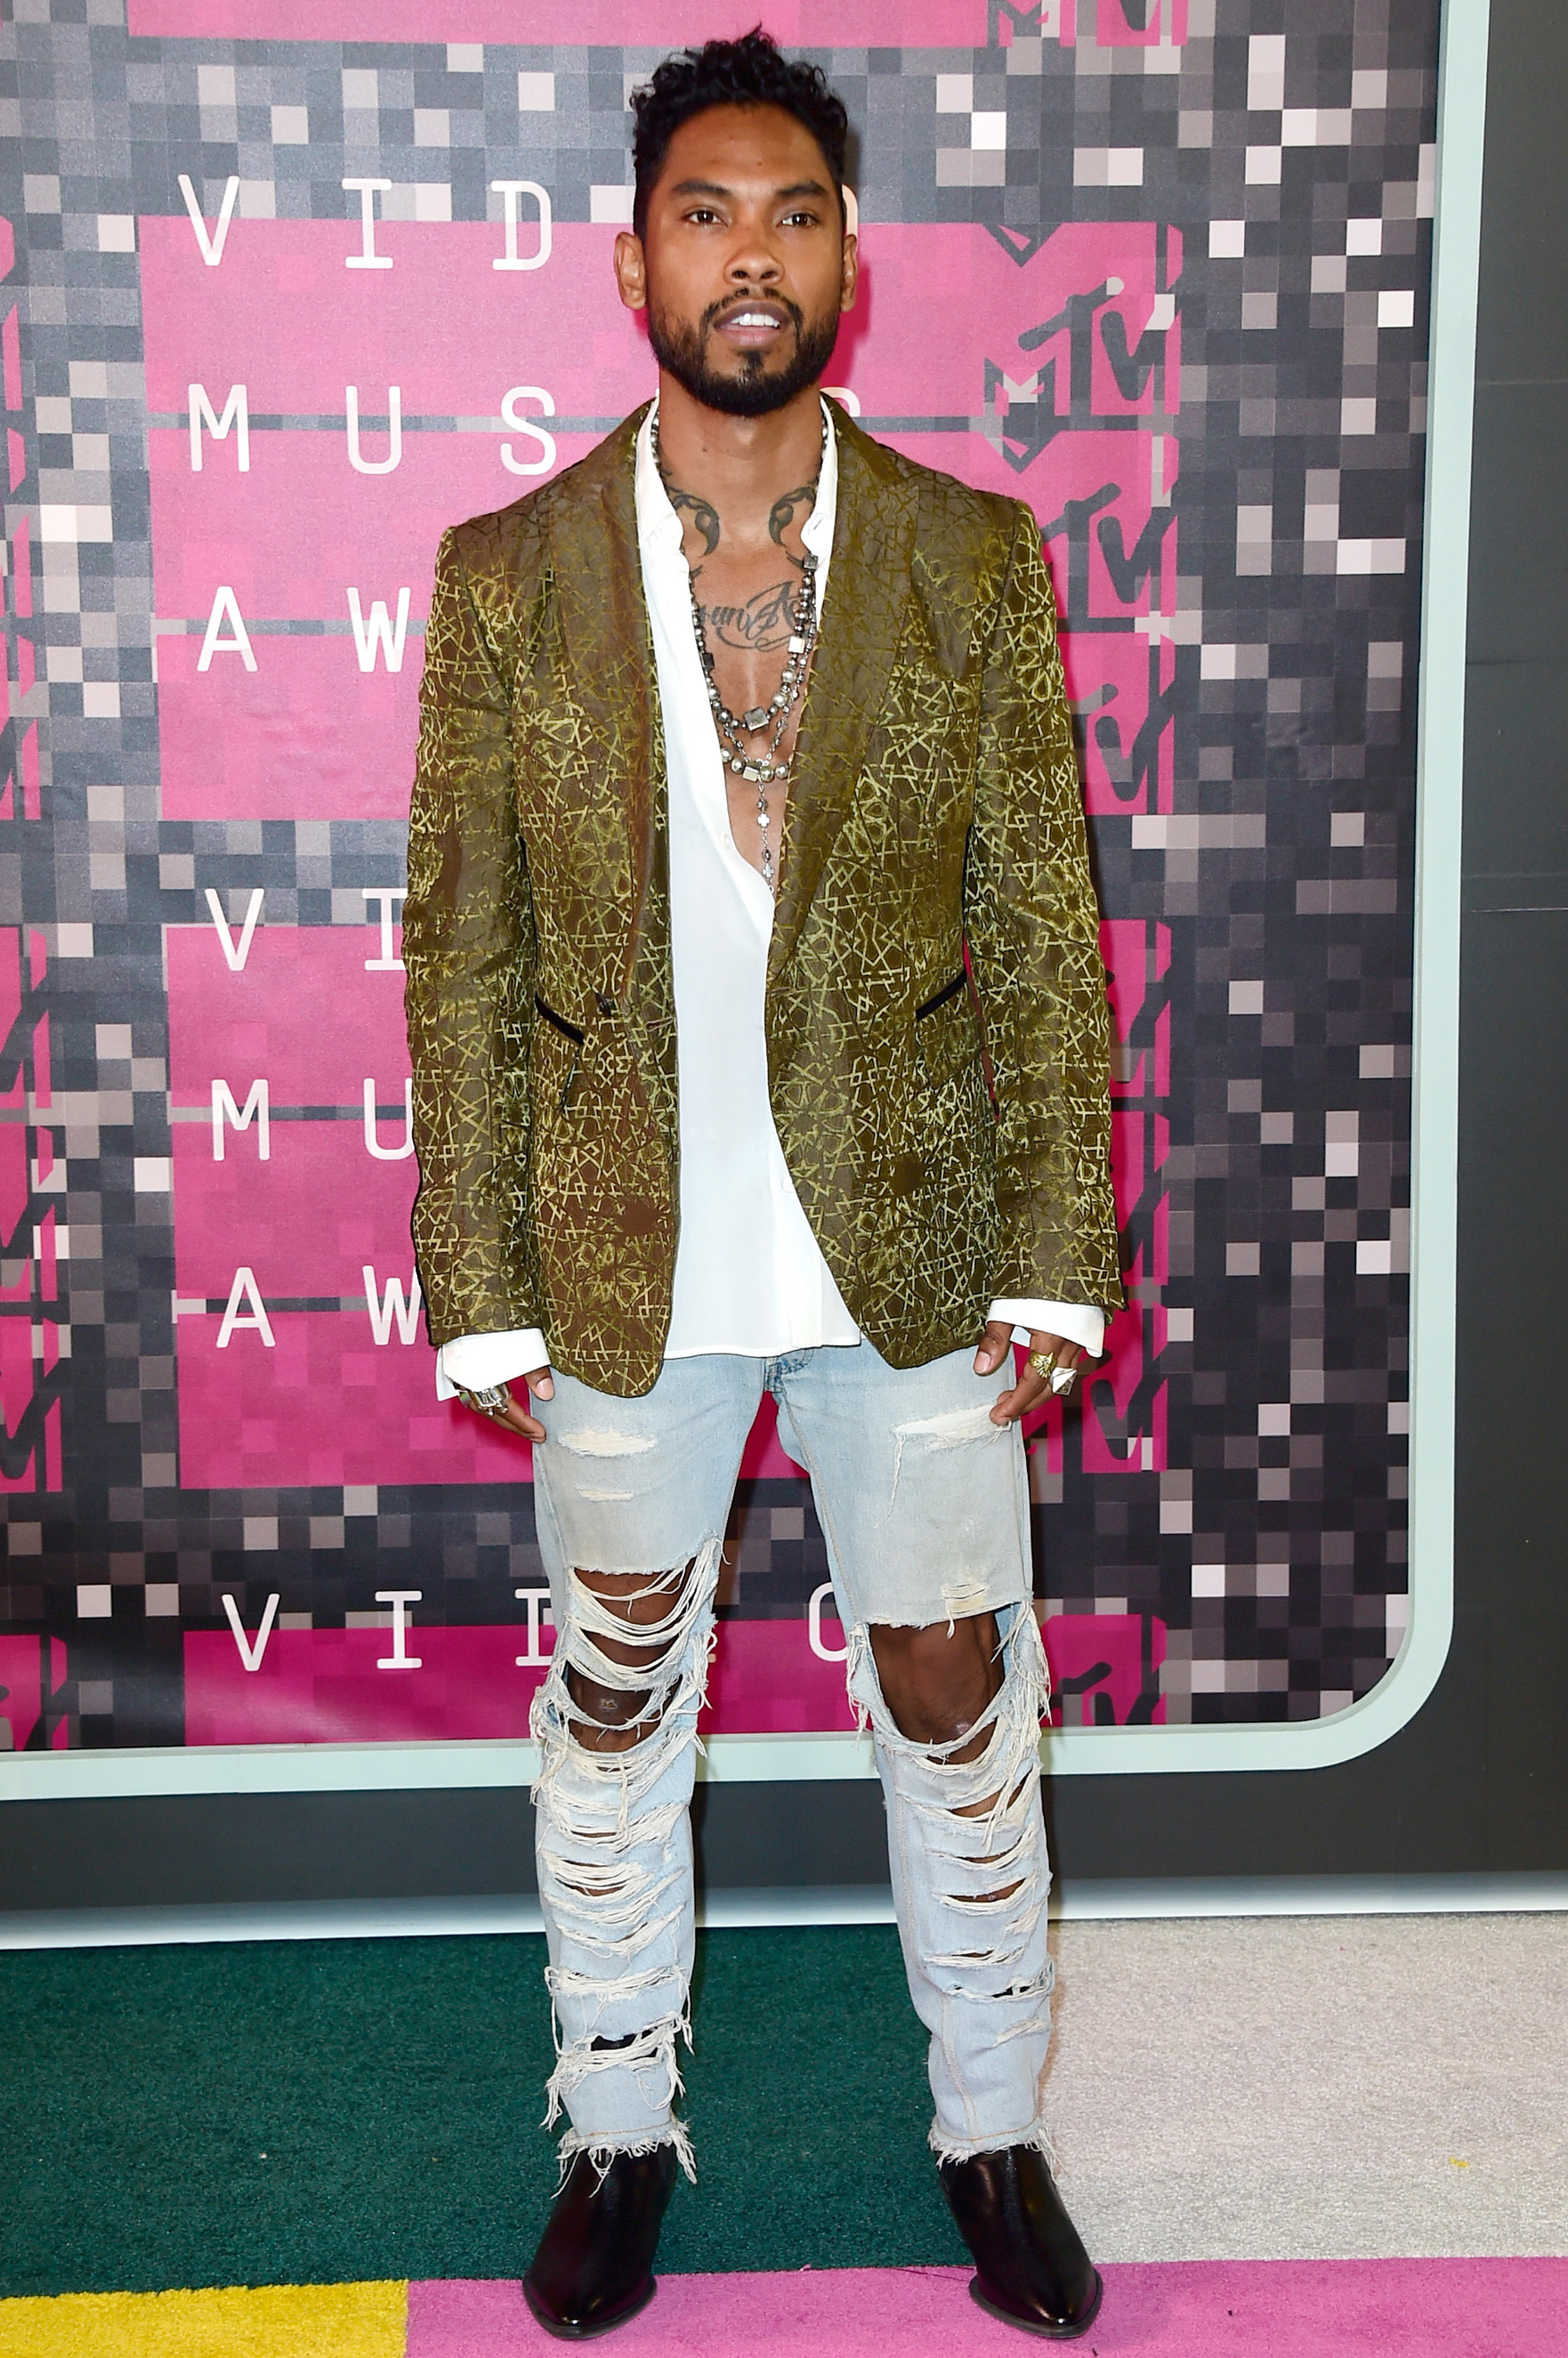 Miguel attends the 2015 MTV Video Music Awards at Microsoft Theater on August 30, 2015 in Los Angeles, California.  (Photo by Frazer Harrison/Getty Images)